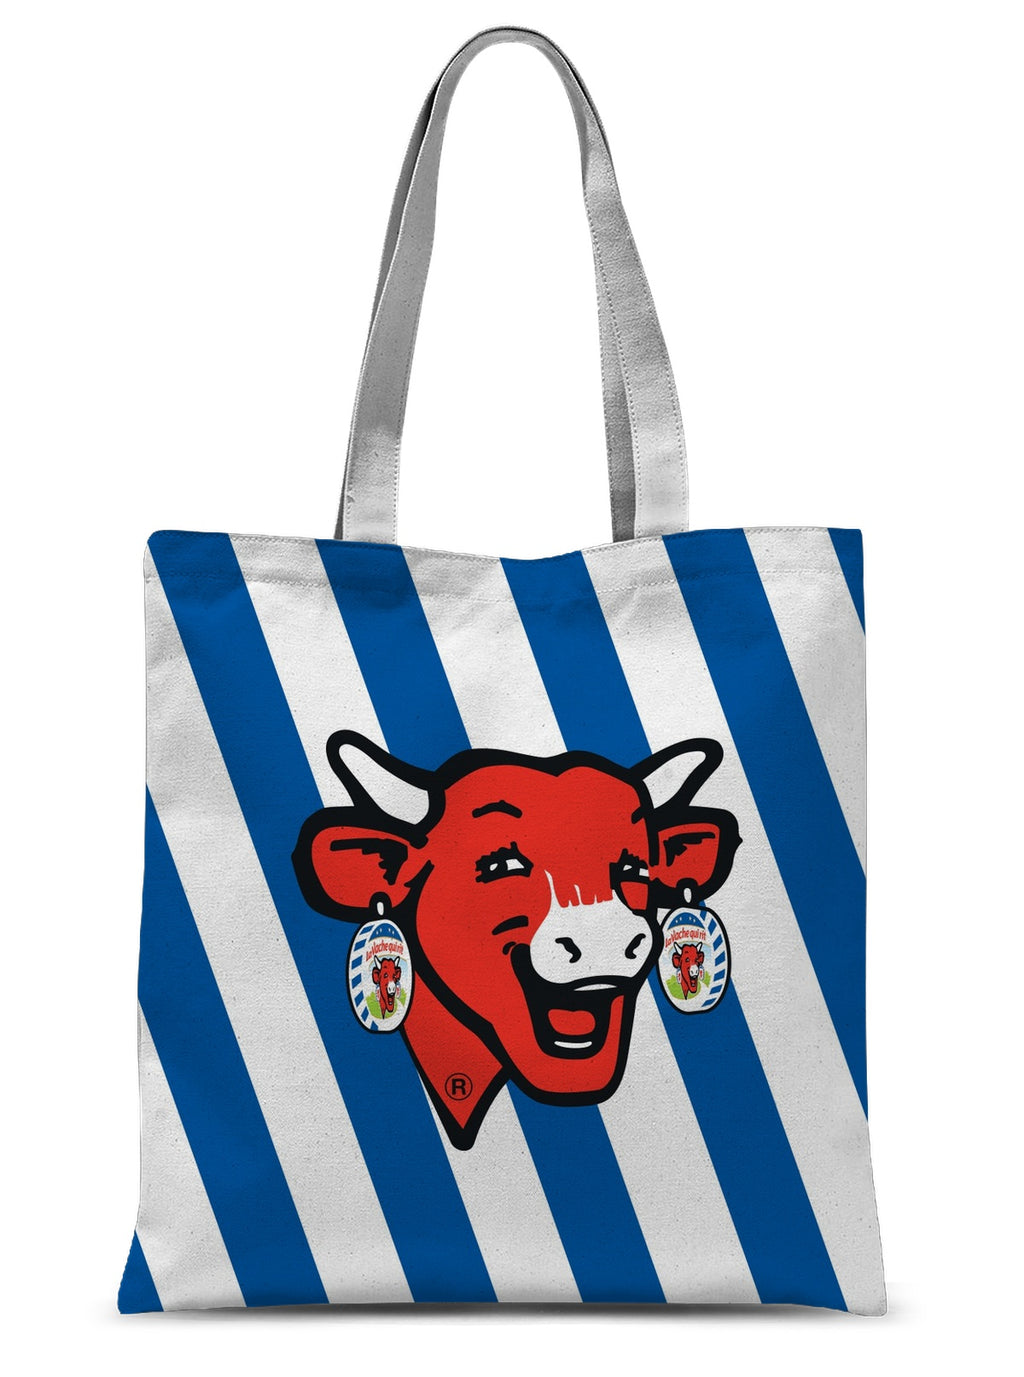 TLC Zebra Sublimation Tote Bag